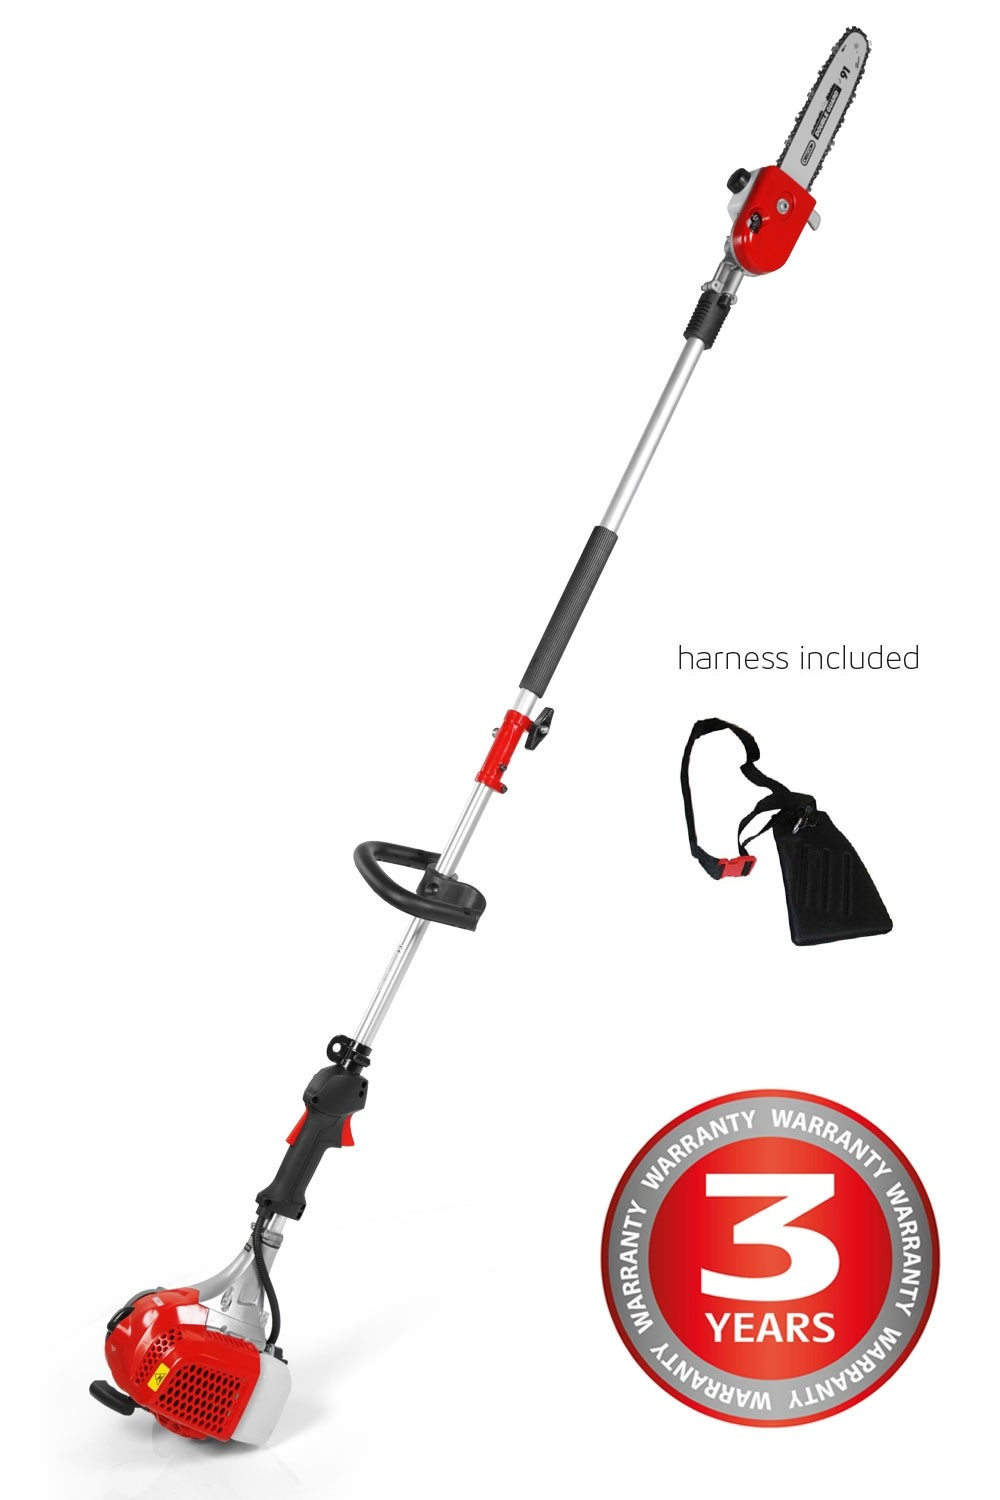 Mitox 28PP Pole Pruner